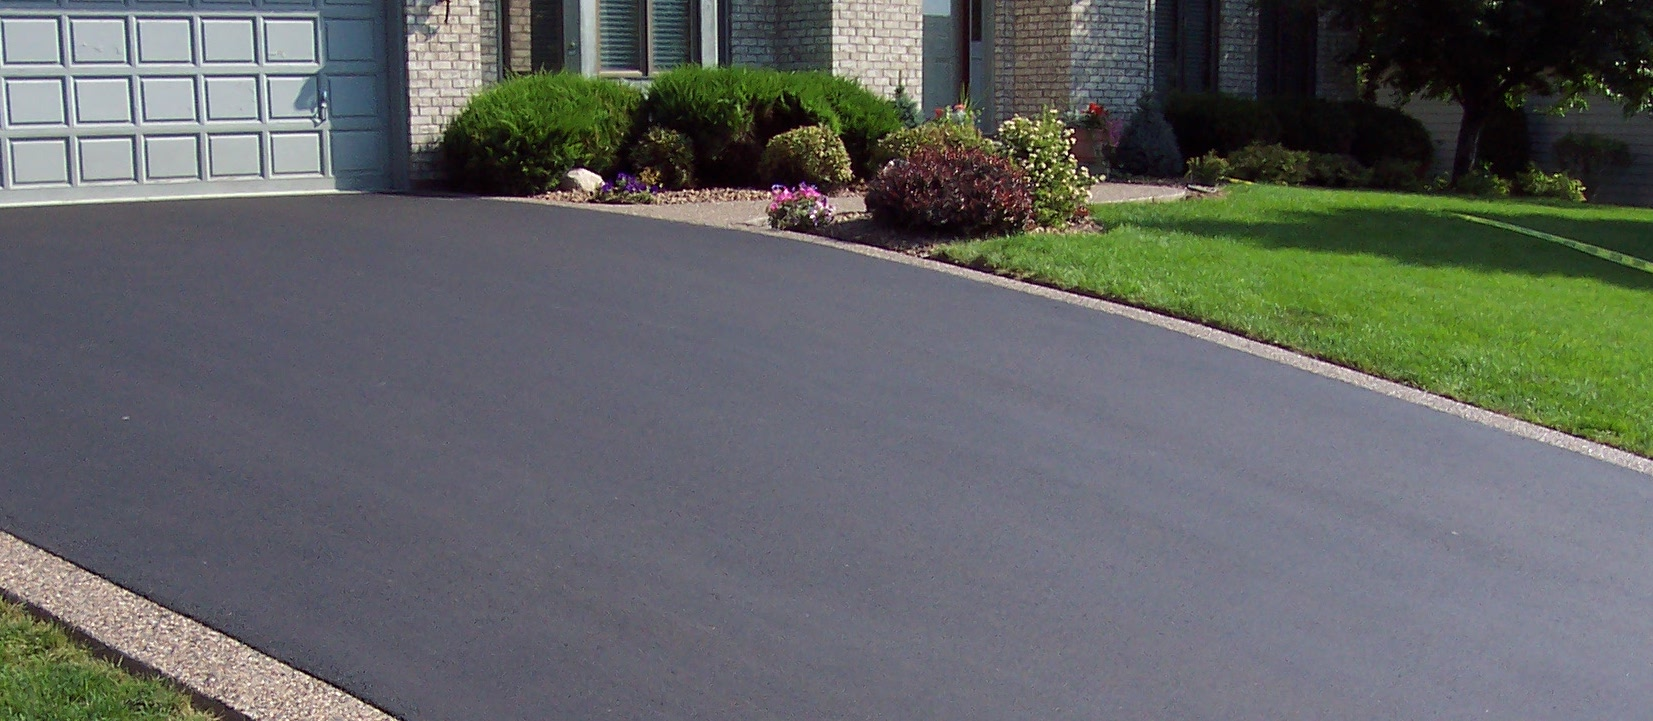 Why You Should Pave Your Driveway